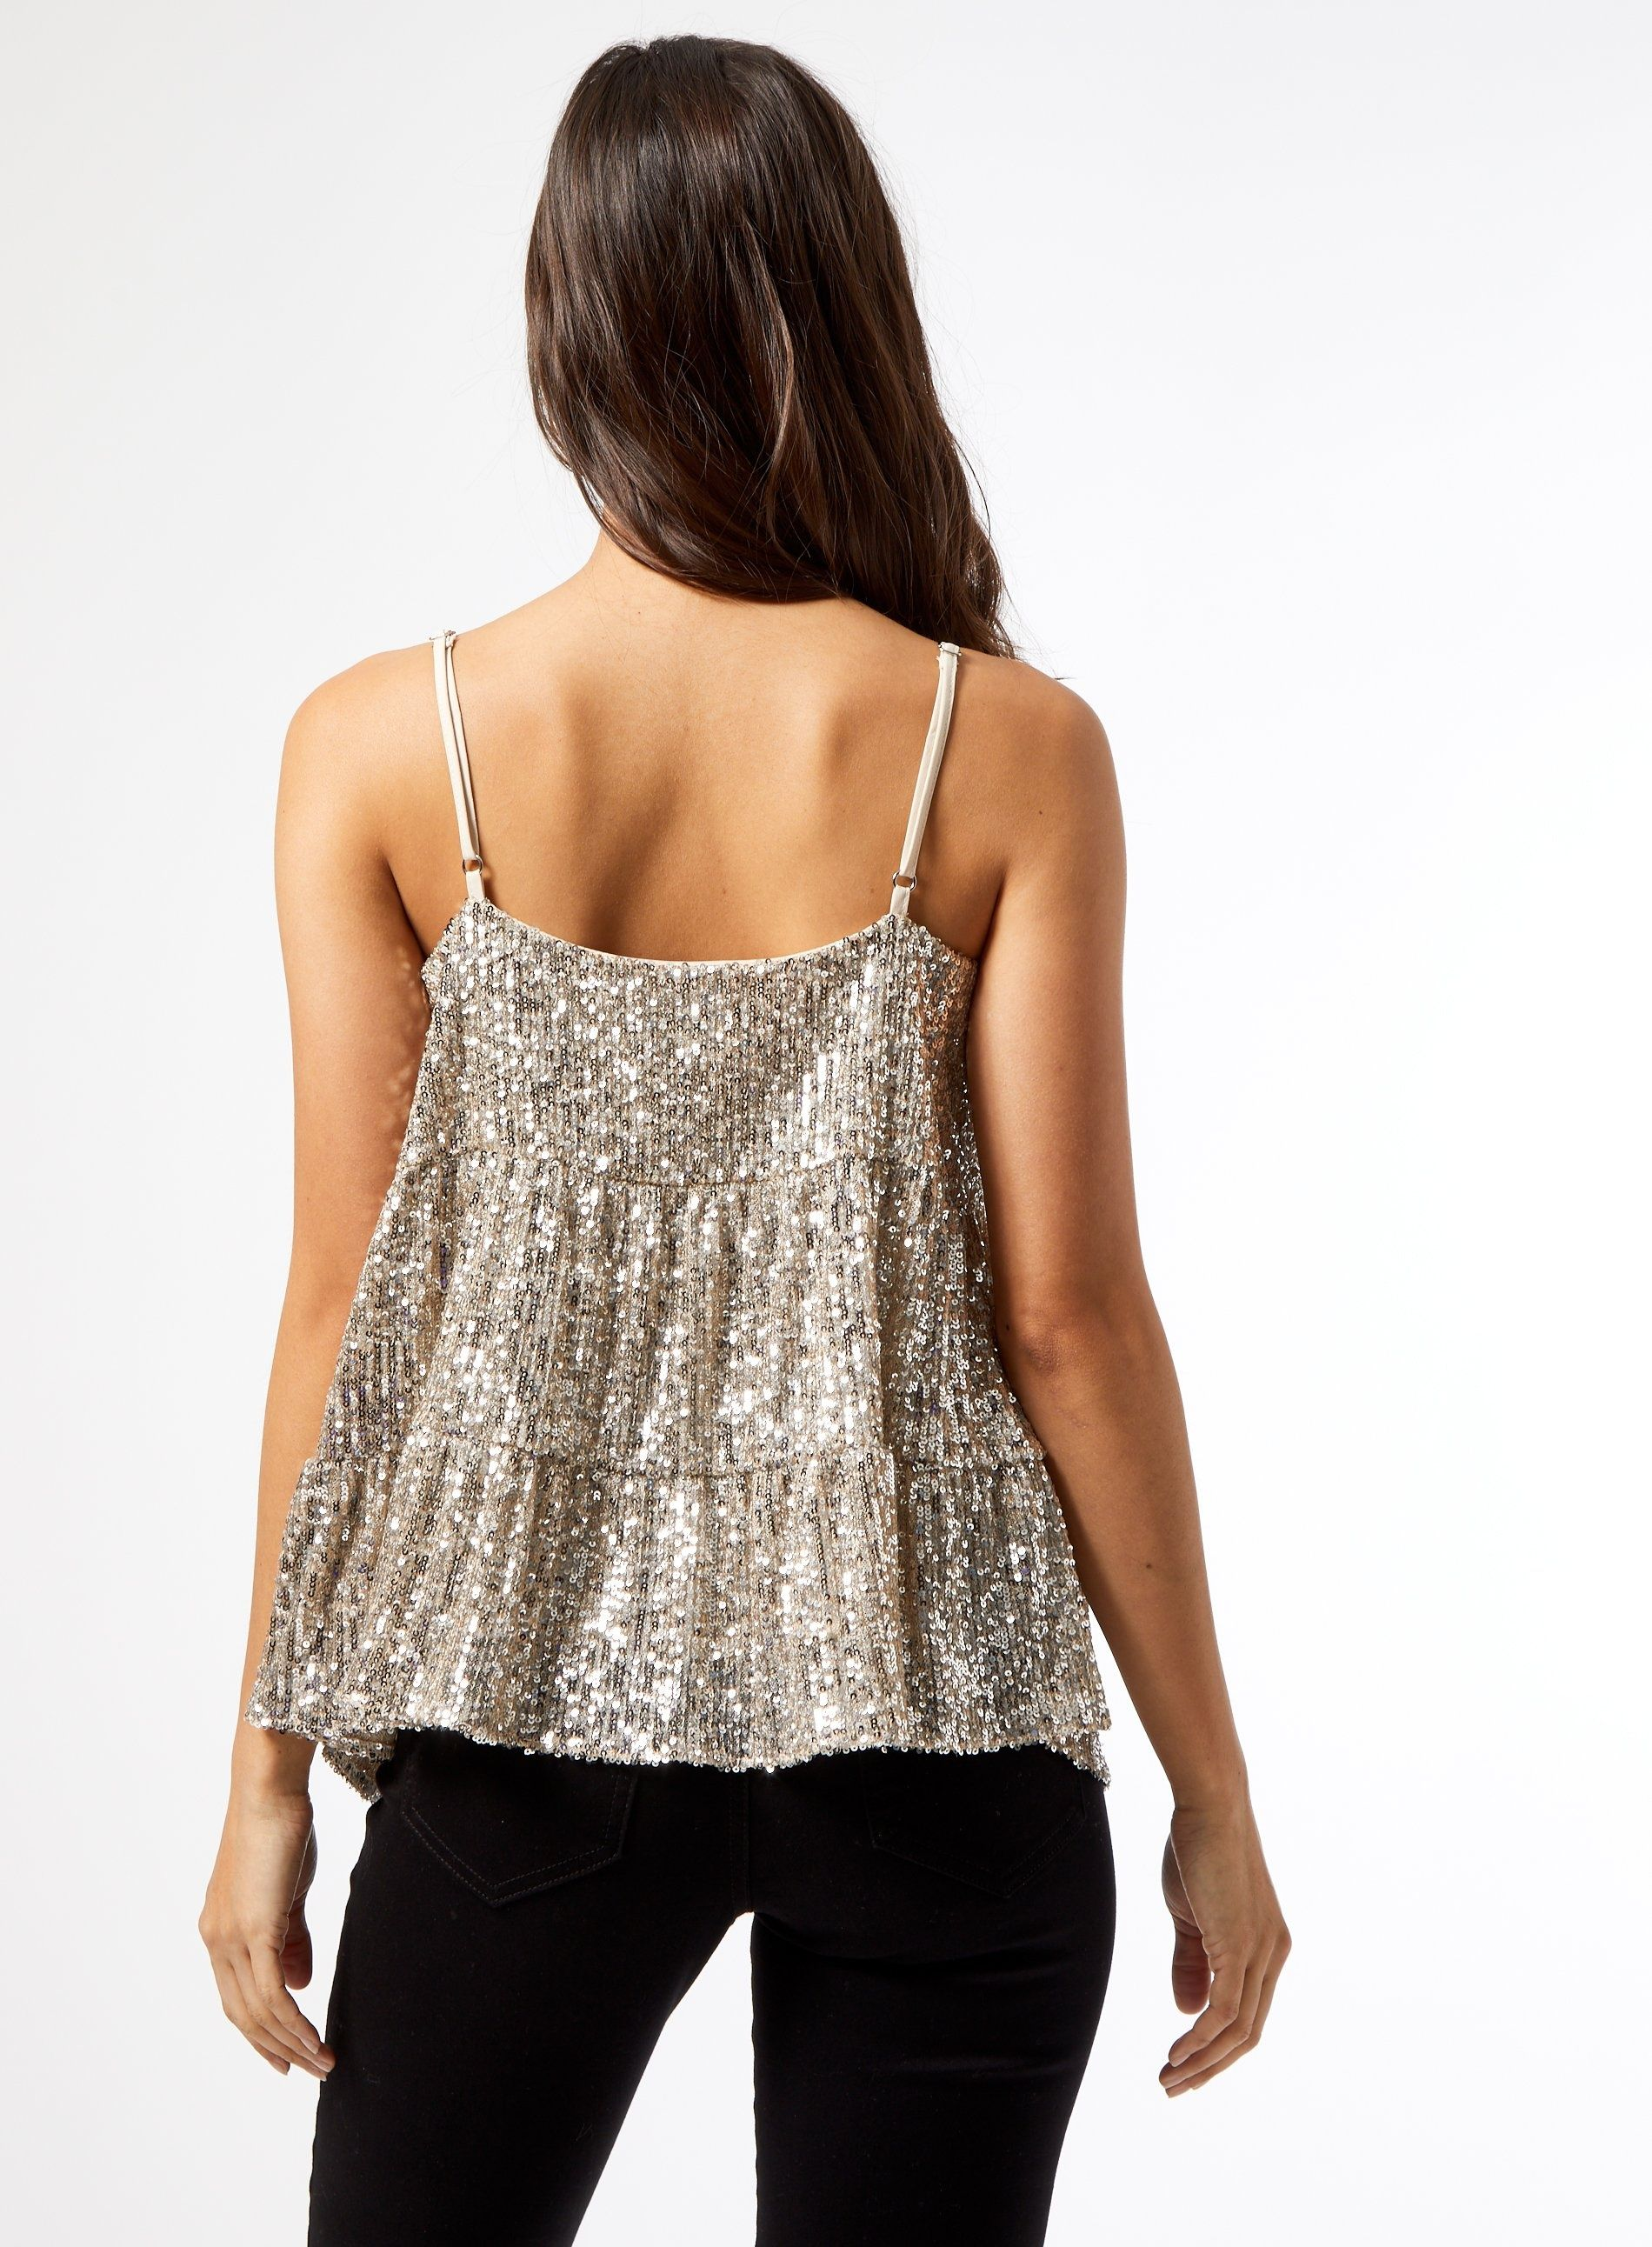 Dorothy Perkins Womens Petite Silver Tiered Sequin Camisole Top Sleeveless Top